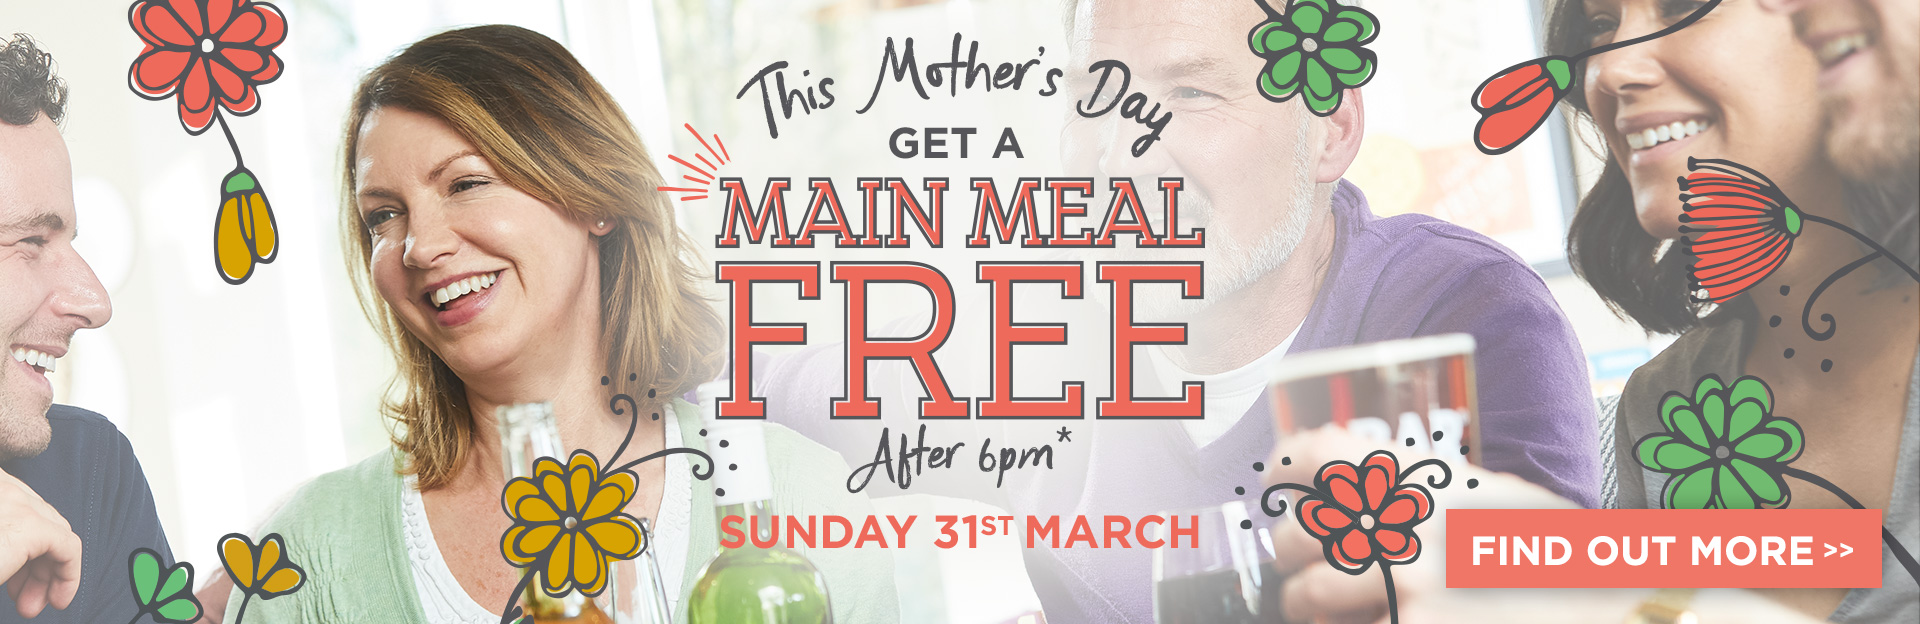 Mother's Day at The Old White Horse